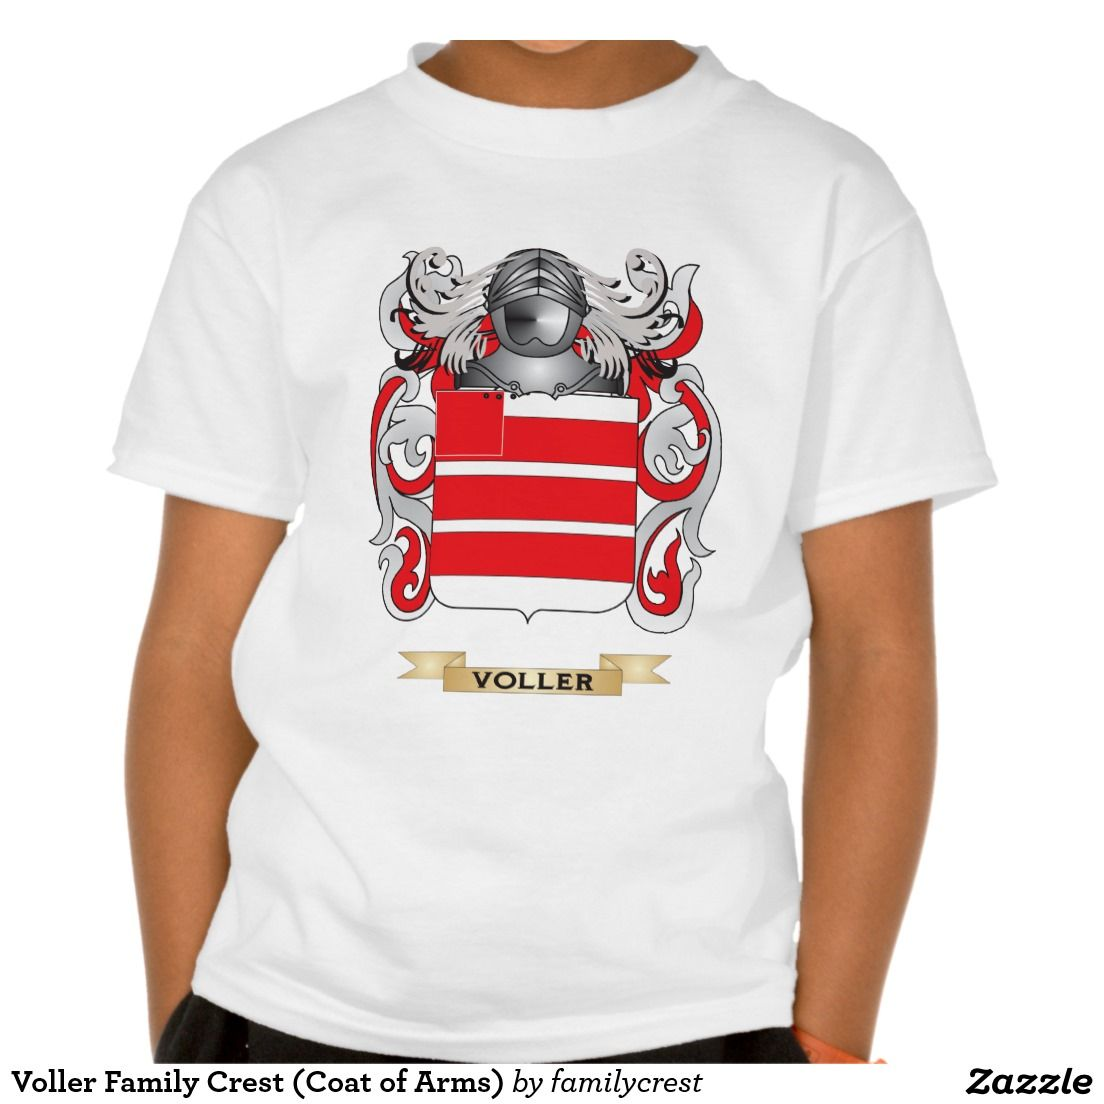 Voller Family Crest (Coat of Arms) Tee Shirts